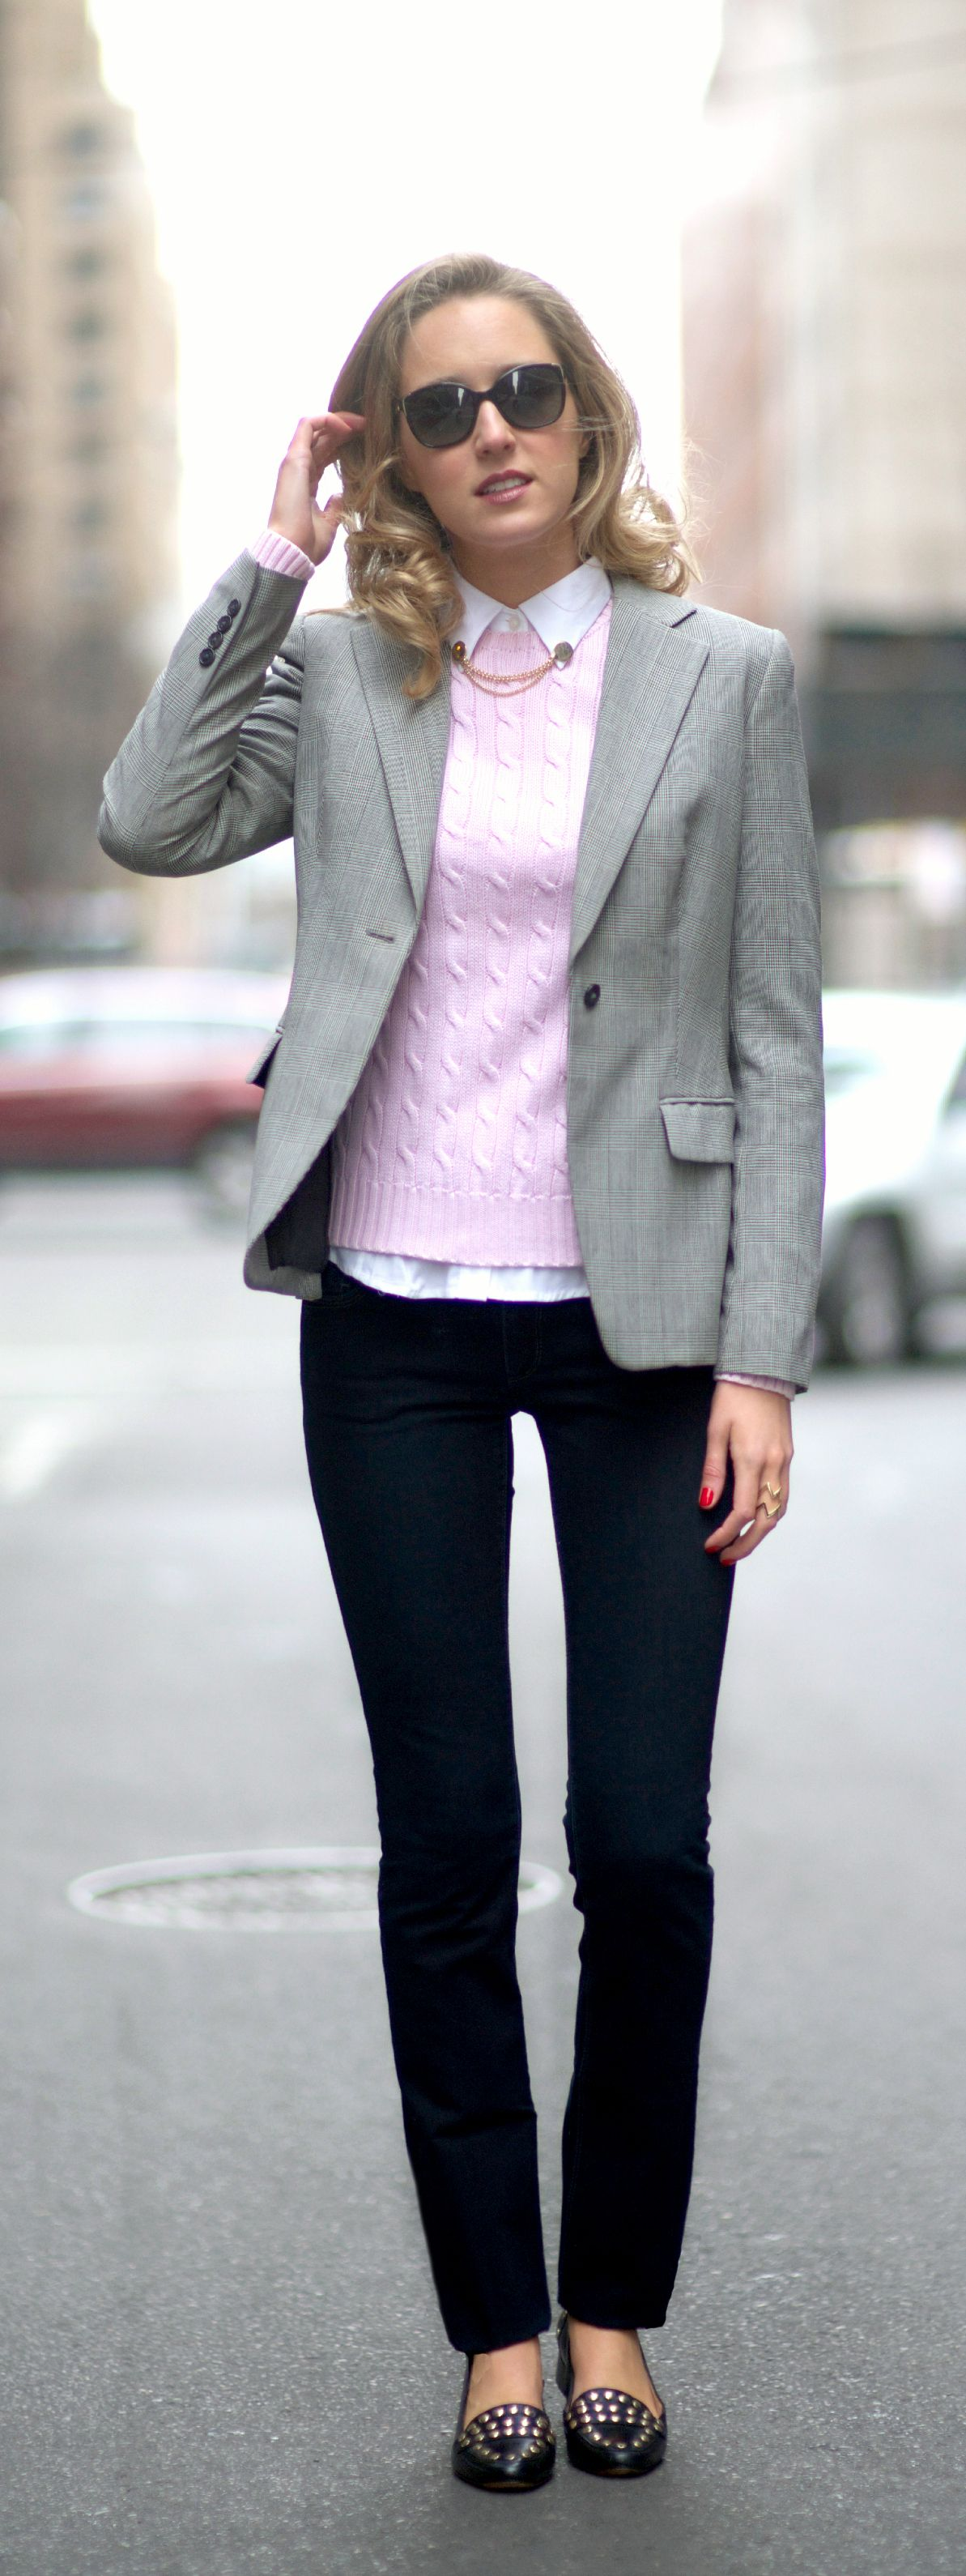 casual friday || houndstooth suit jacket, black jeans, pink cable ...